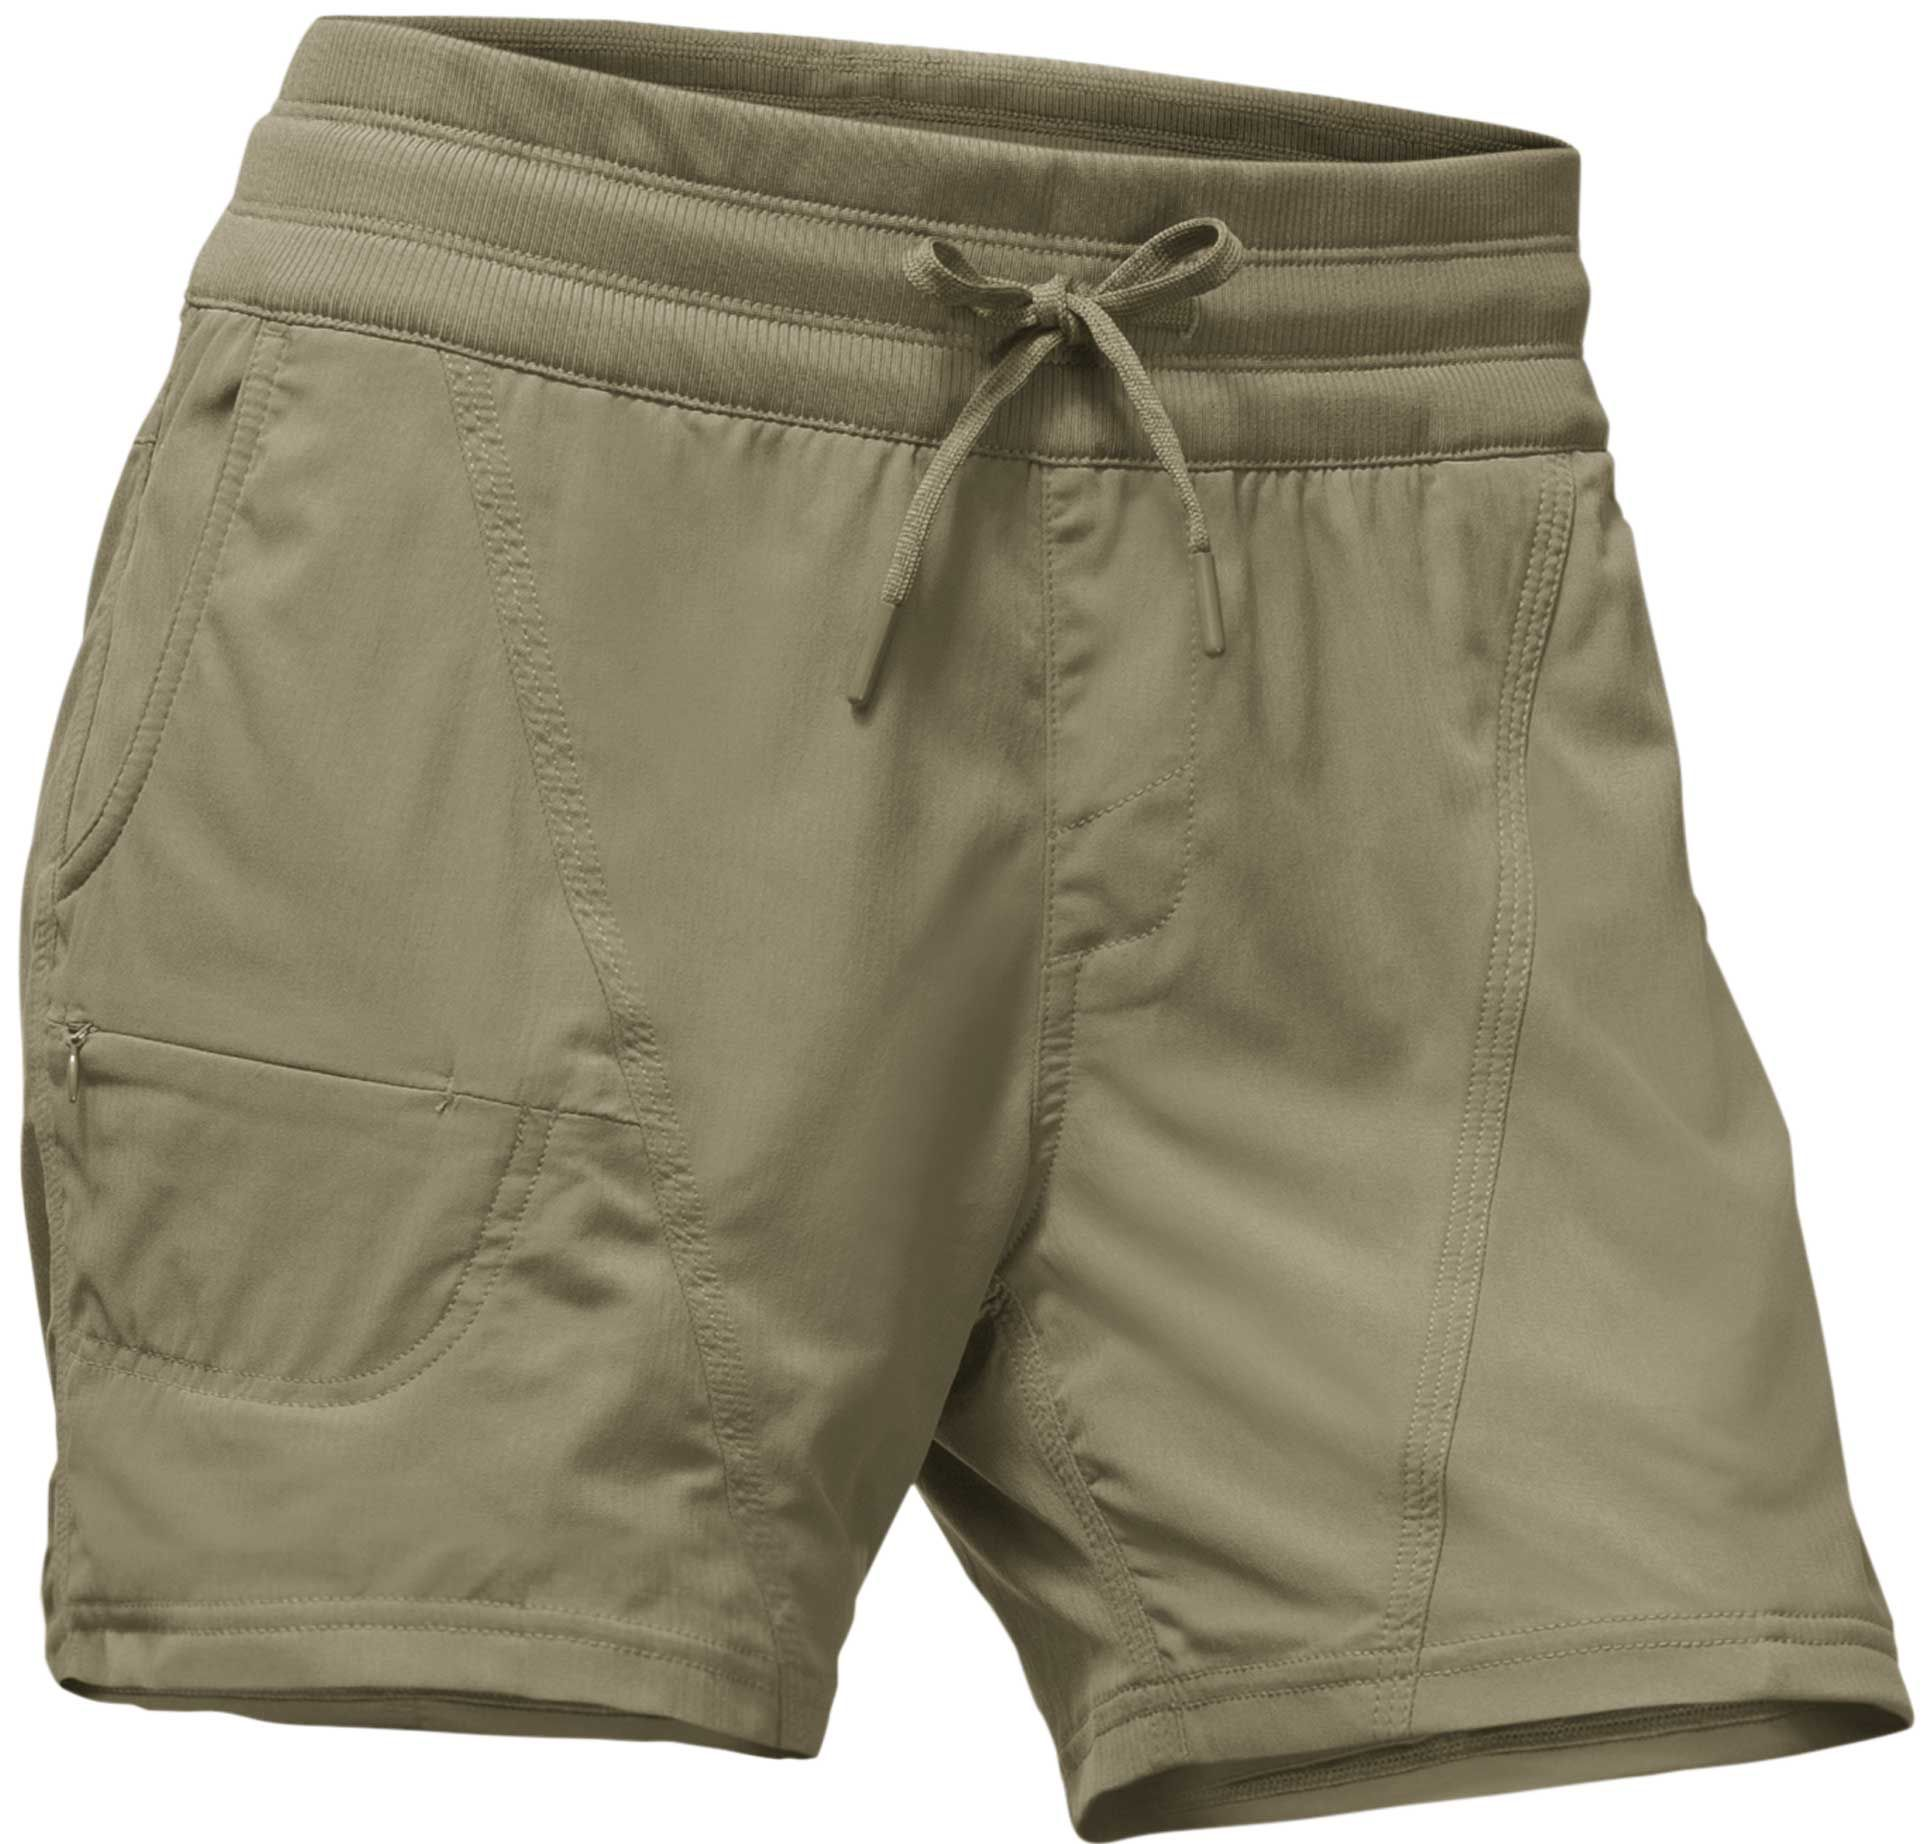 Hiking Shorts   DICK'S Sporting Goods